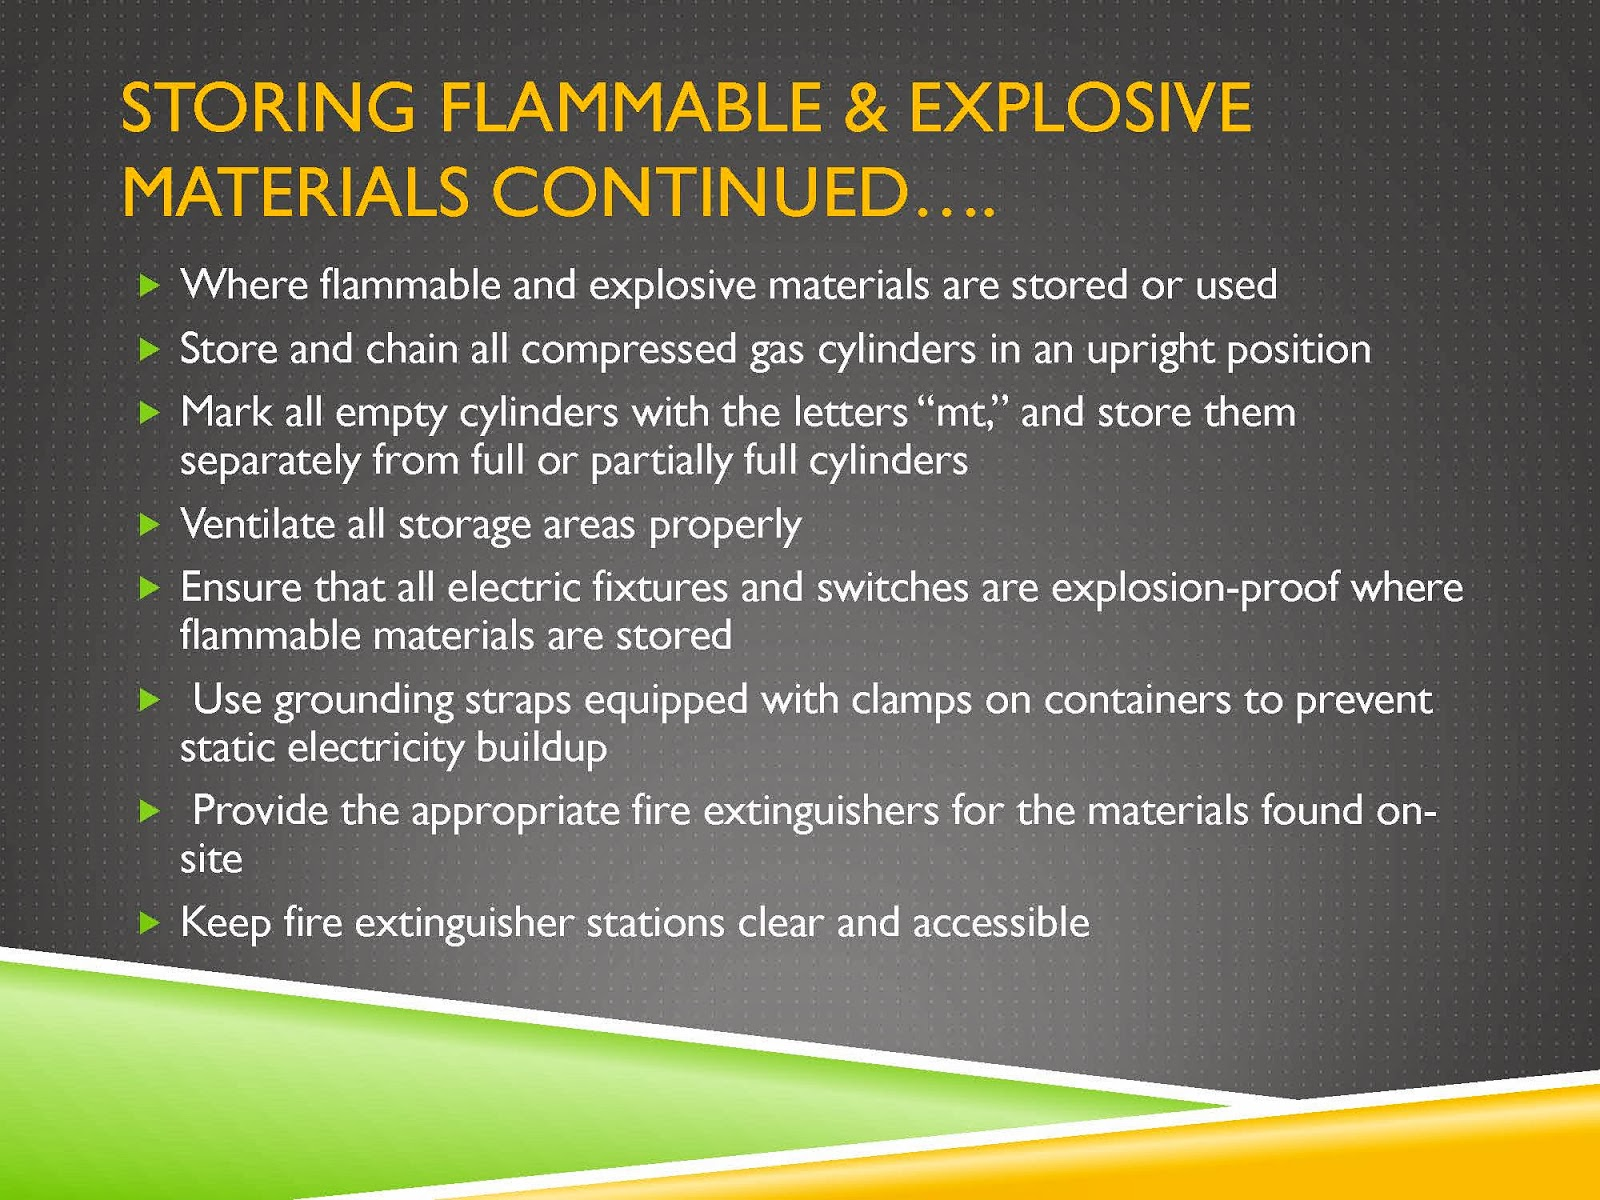 STORAGE OF FLAMMABLE AND EXPLOSIVE MATERIALS